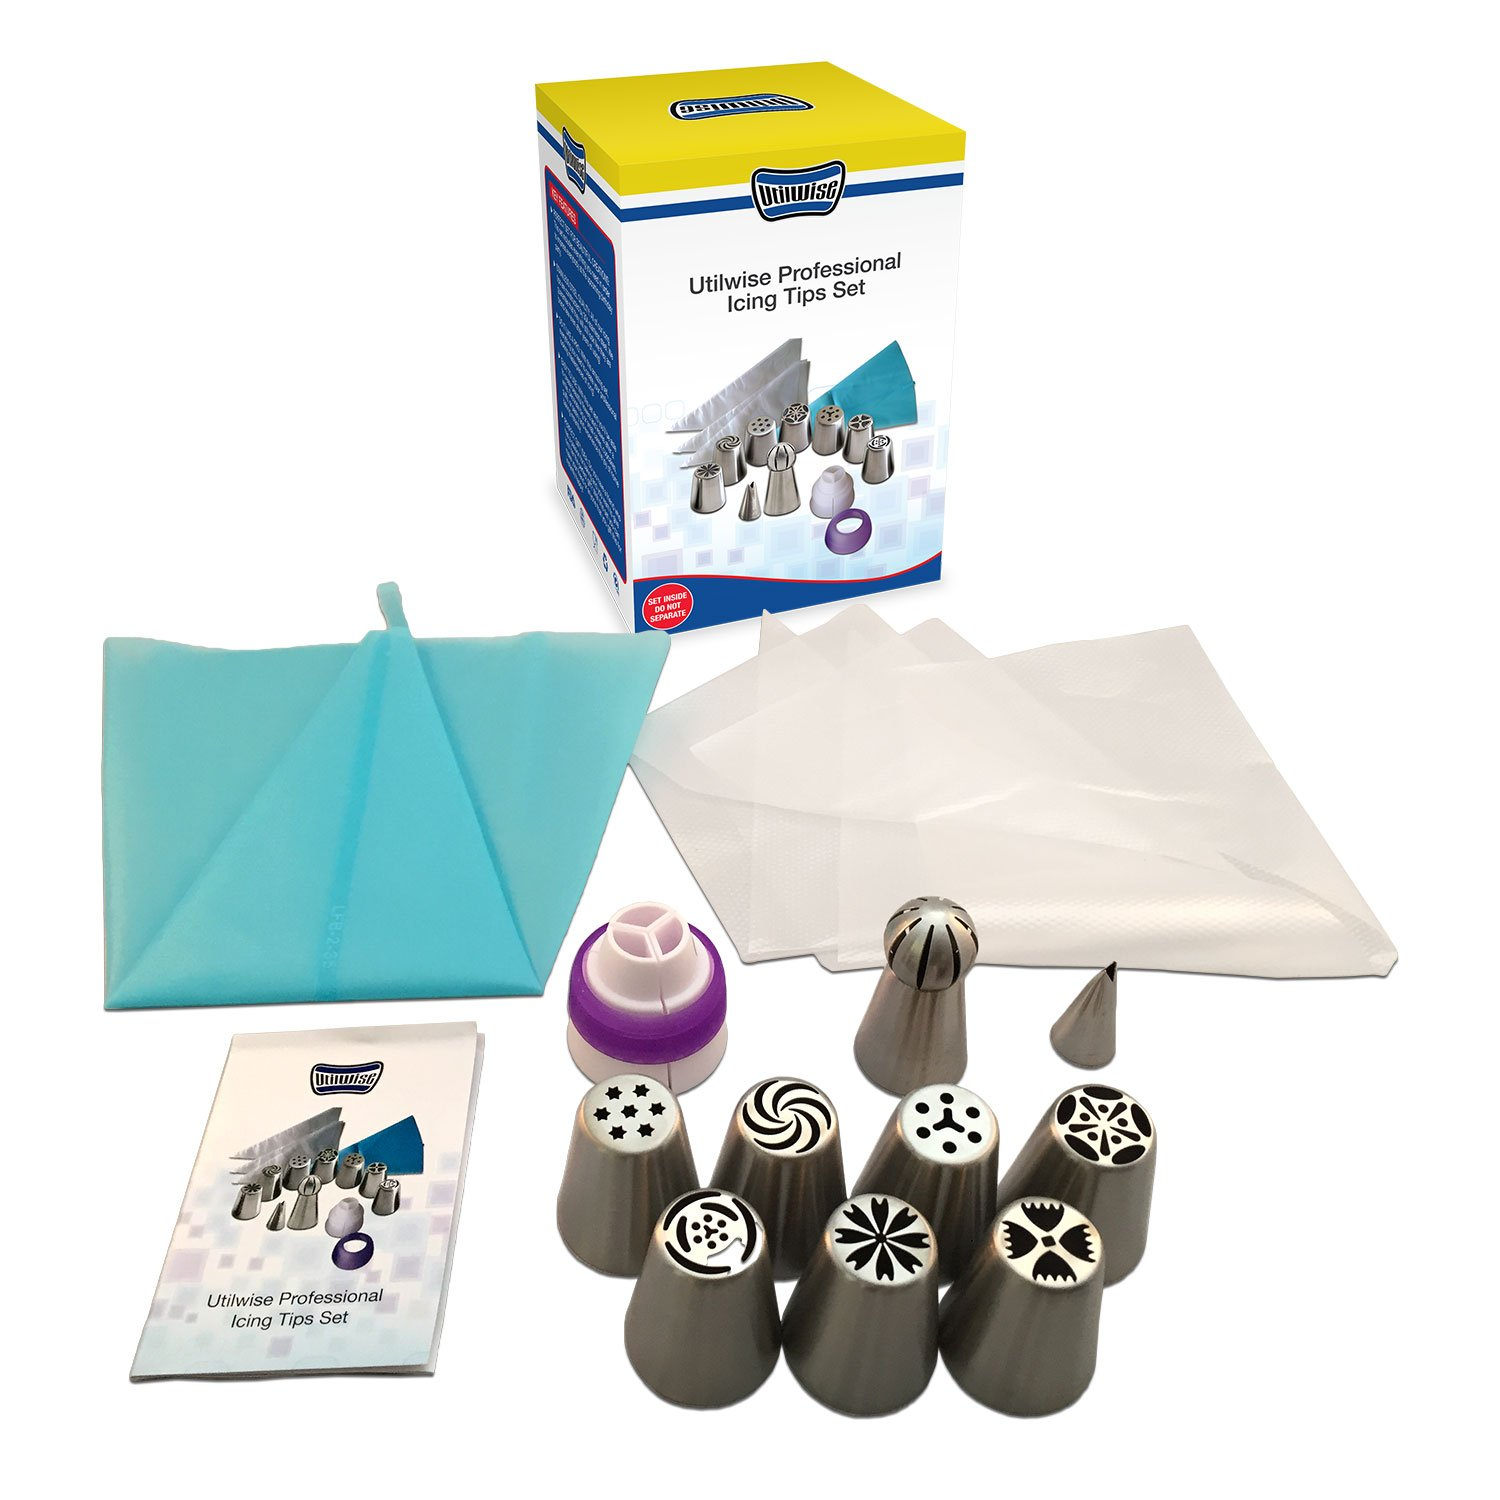 Utilwise Russian Piping Tips 14 PCS Set (7 Russian Tips, 1 Sphere Tip, 1 Leaf Tip, 1 Tri-Coupler, 1 Reusable Silicone Pastry Bag, 3 Disposable Pastry Bags Extra Large 304 Steel Instructions Included